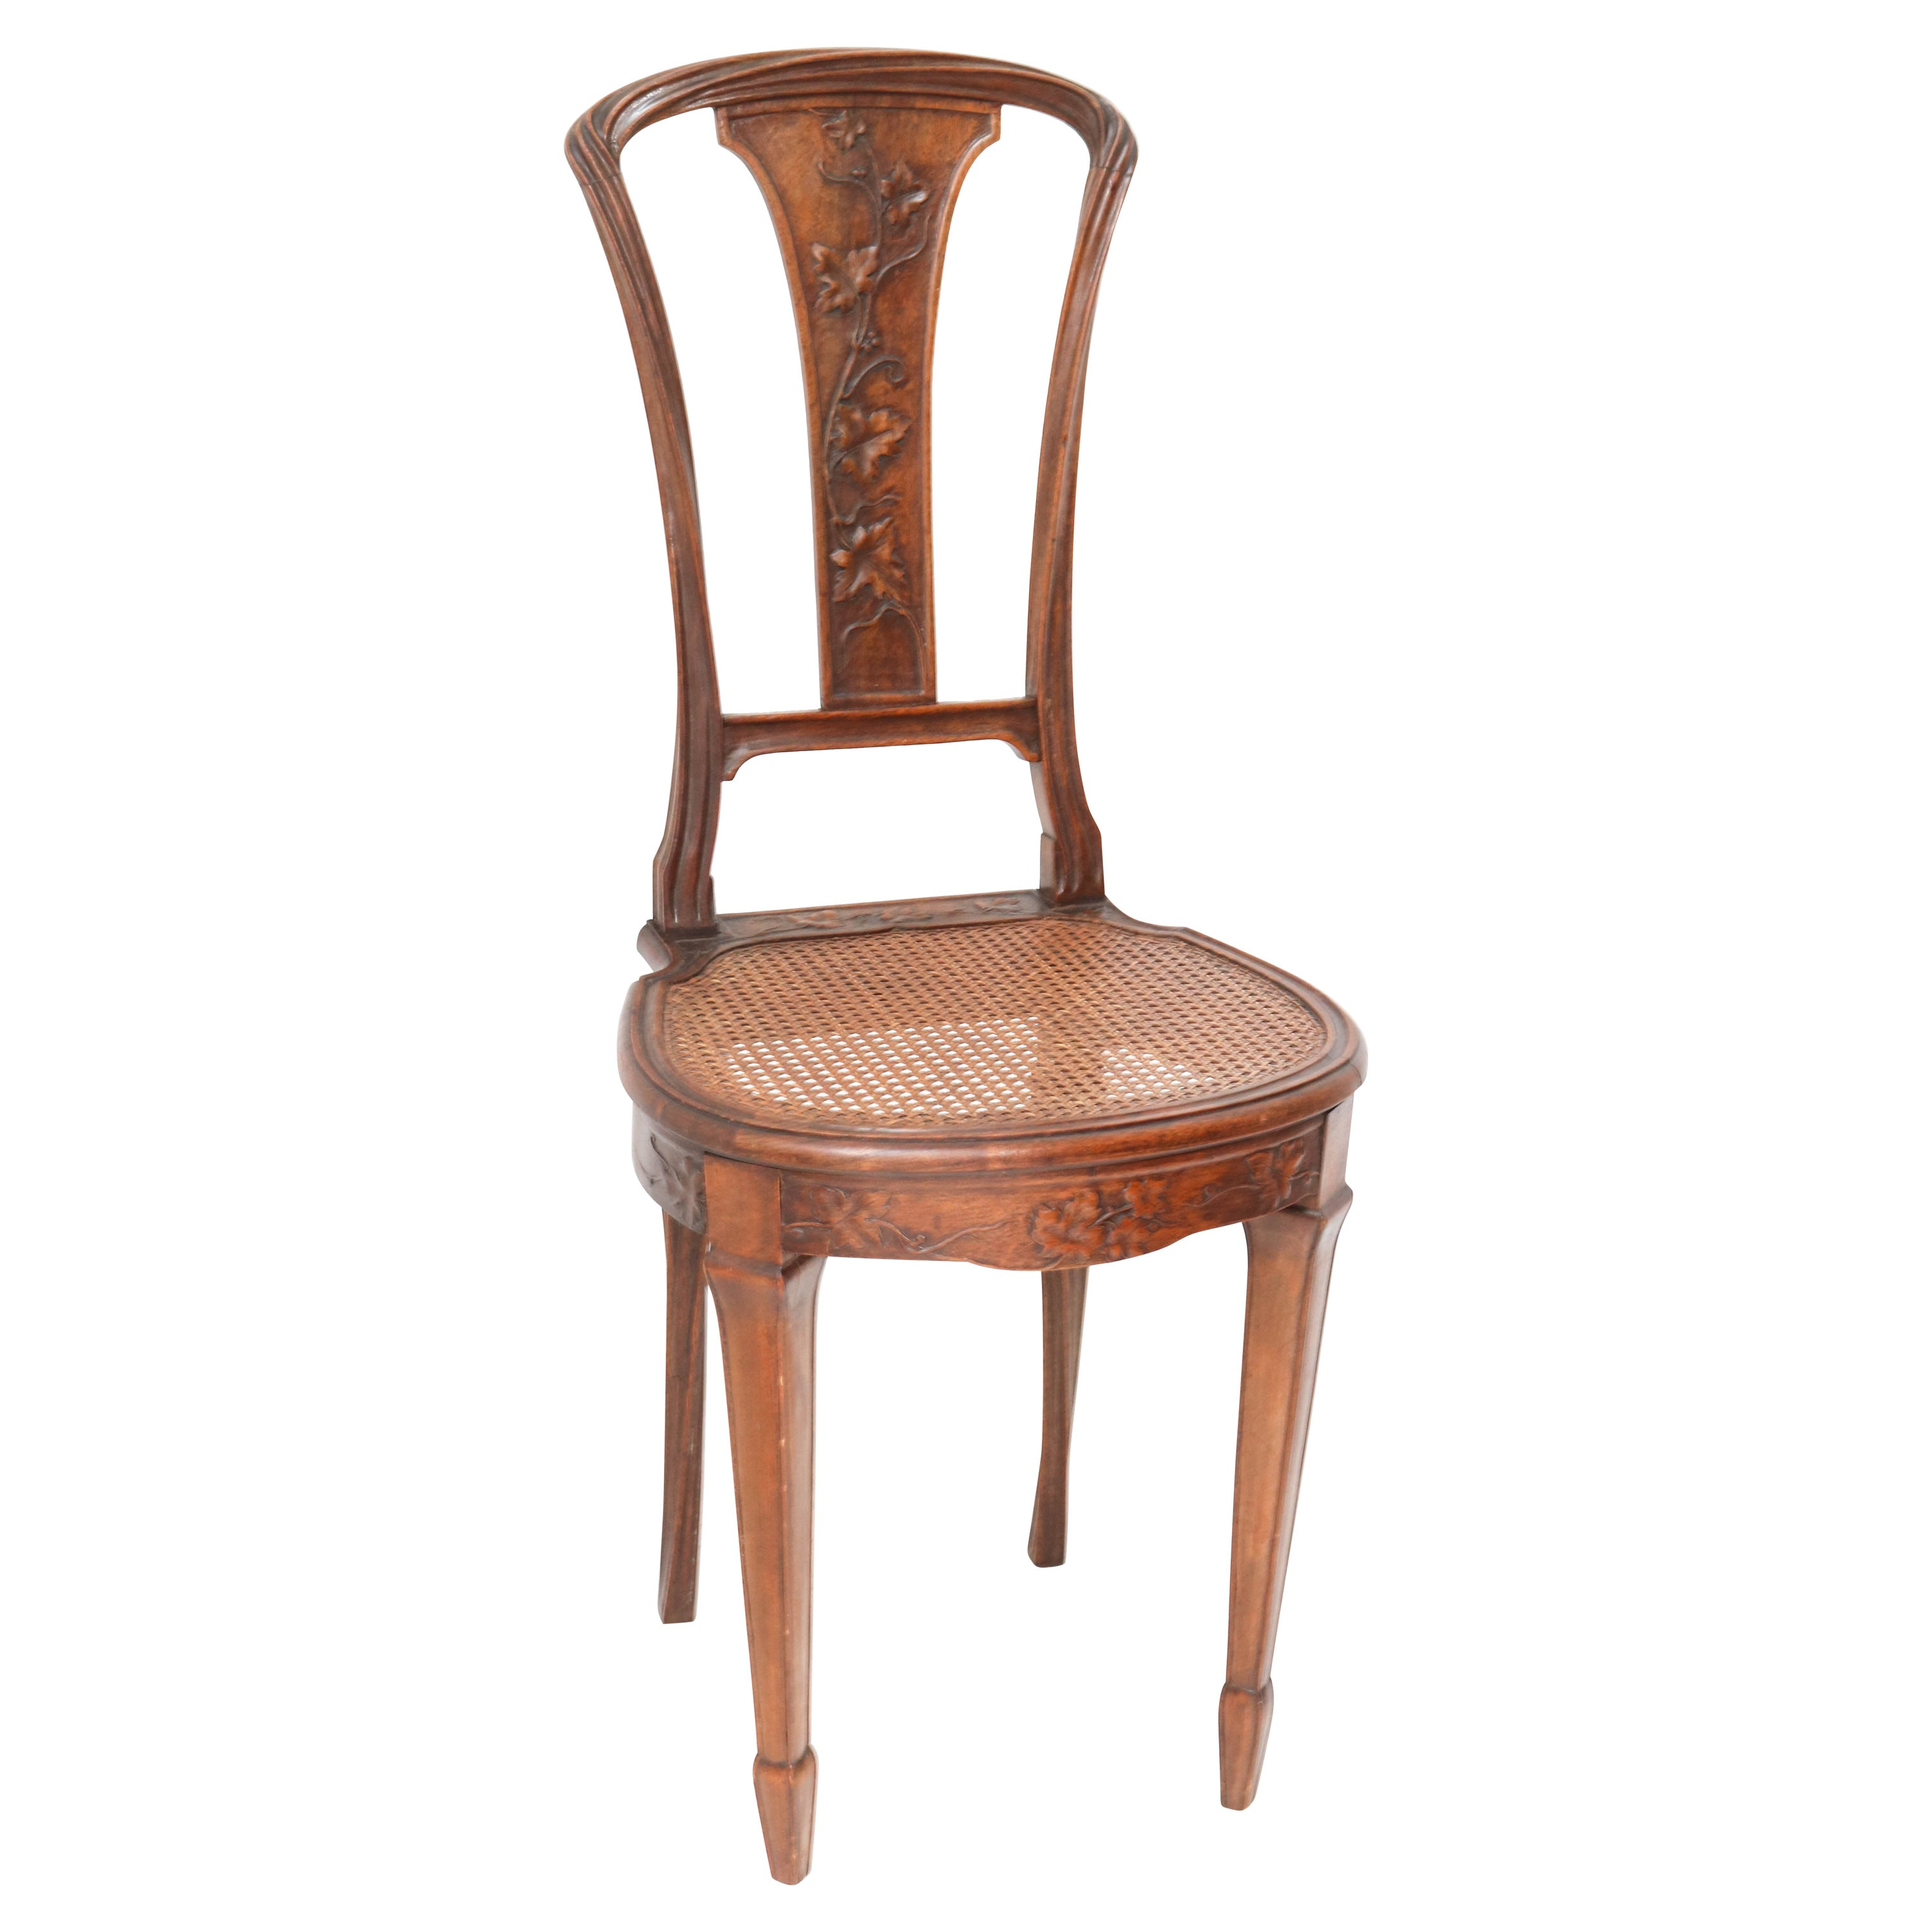 French Walnut Art Nouveau Side Chair Attributed to Louis Majorelle, 1900s